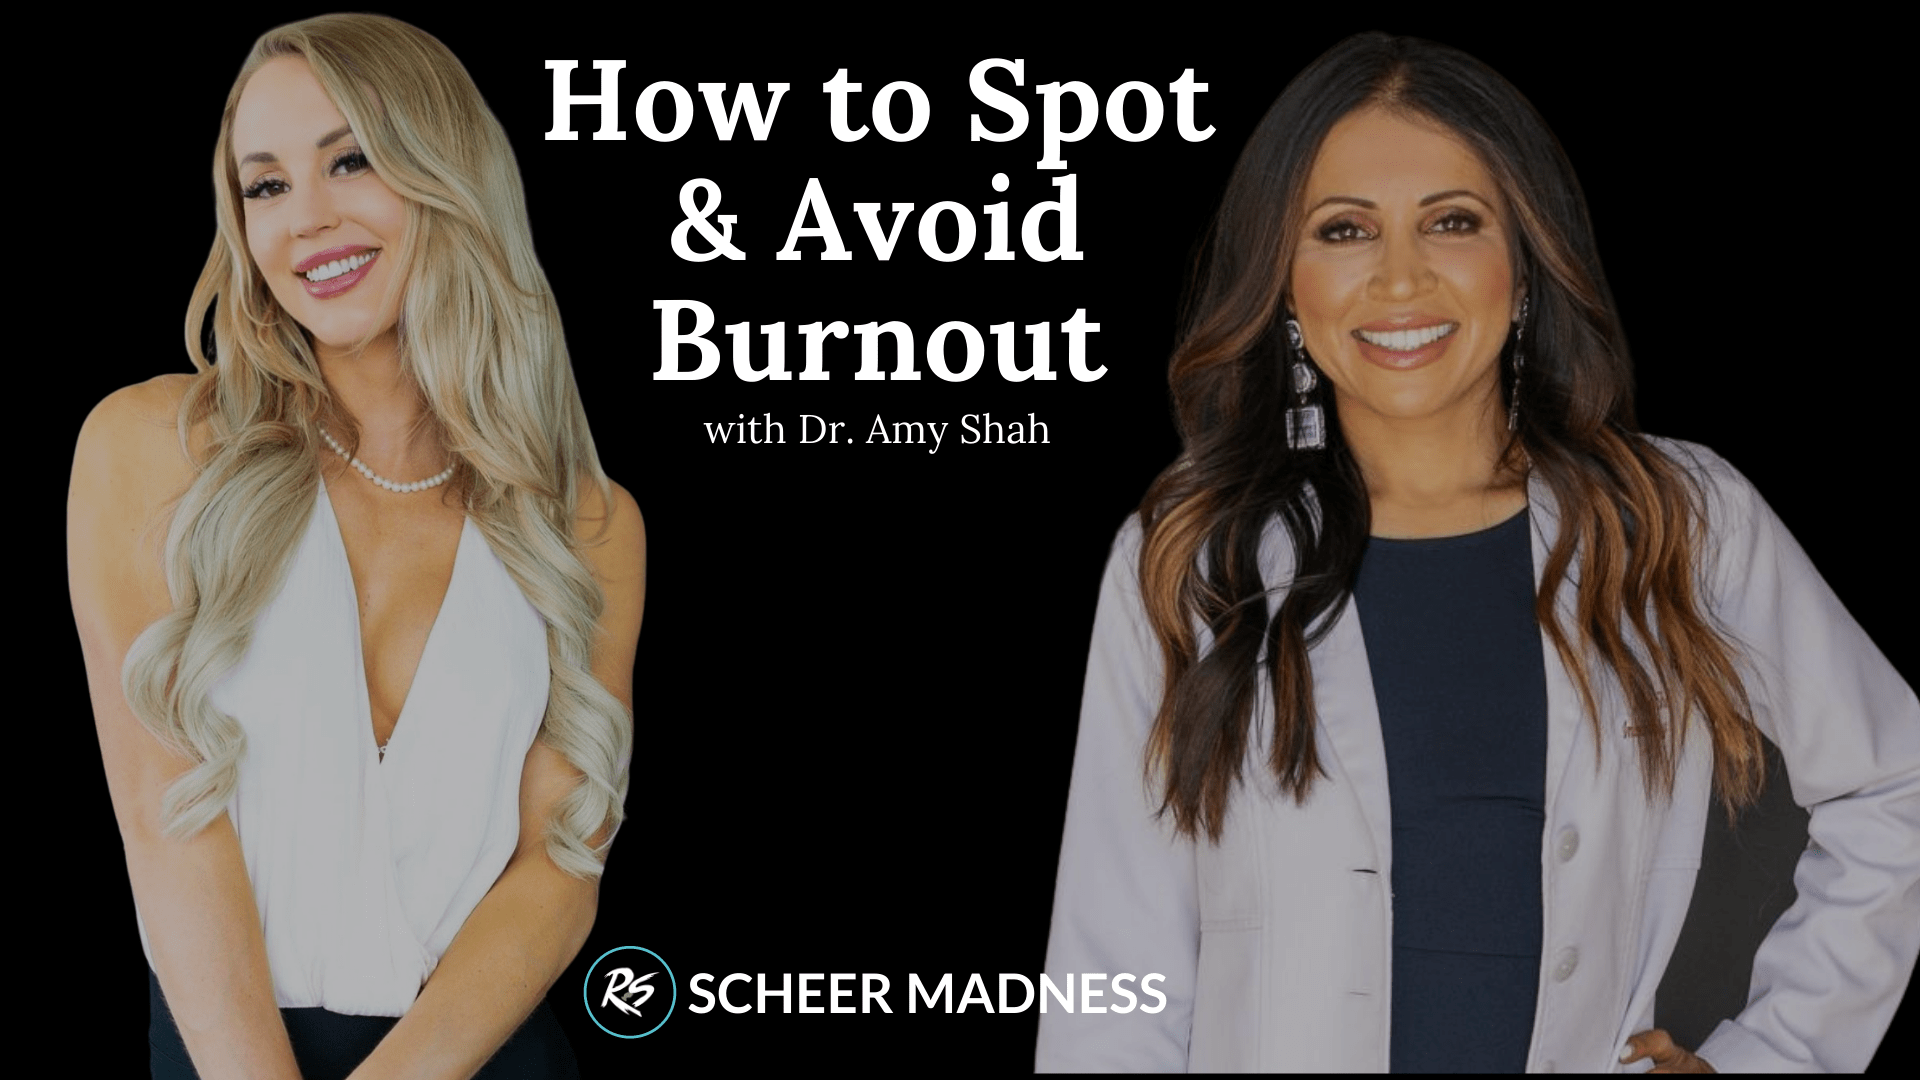 How to Stop and Avoid Burnout with Dr. Amy Shah